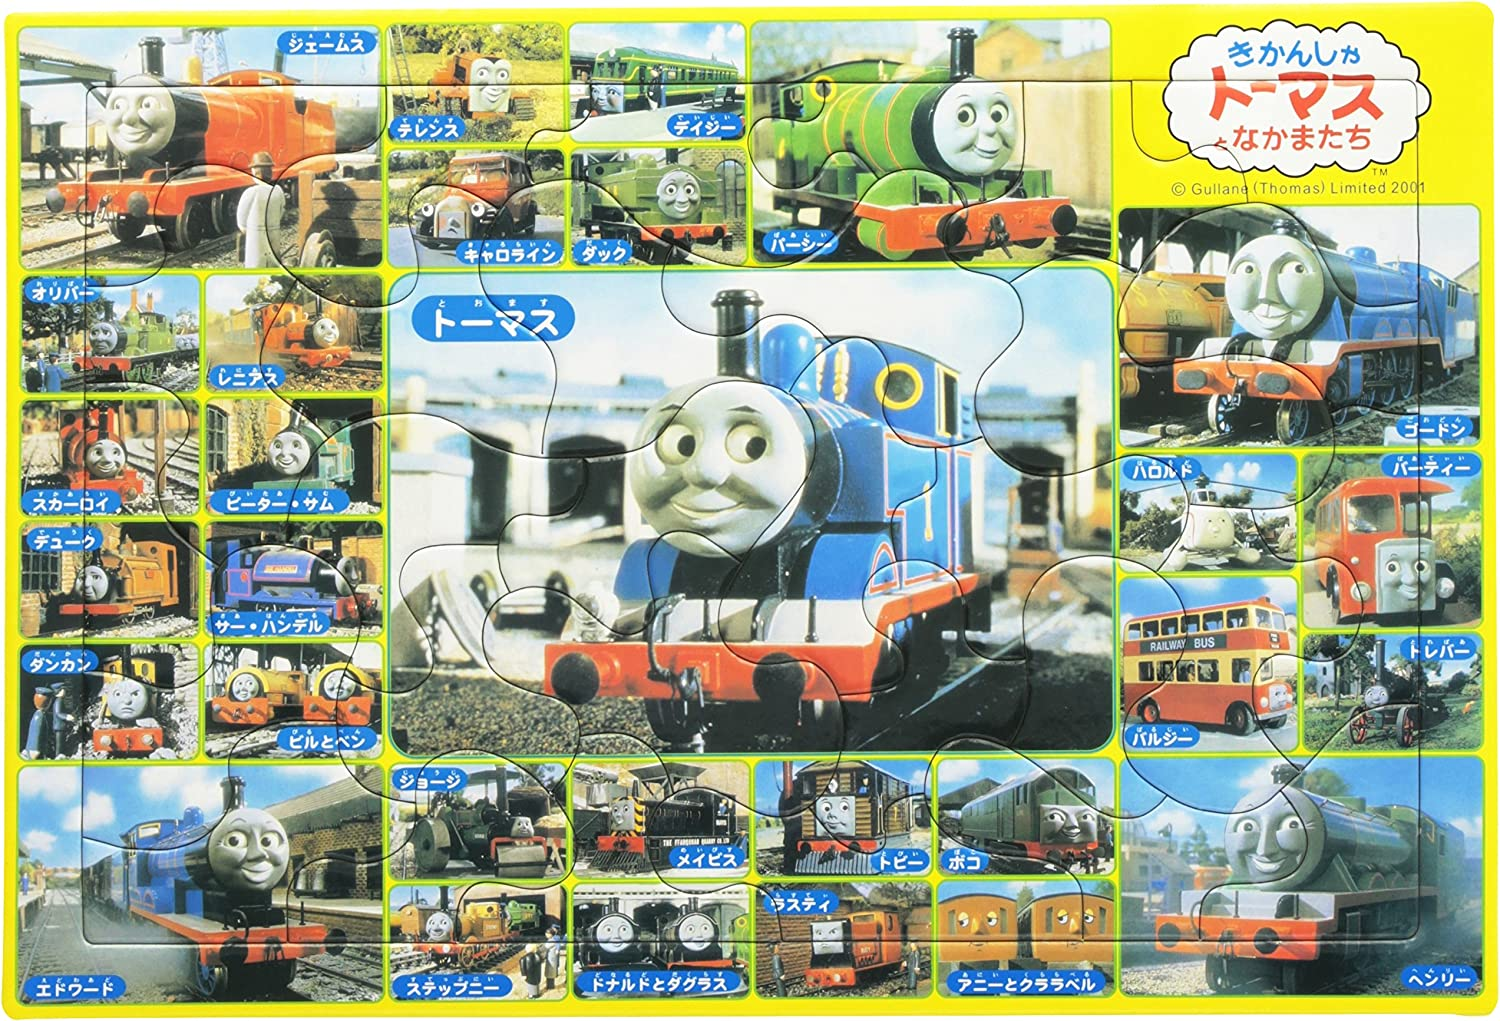 Colleagues large set 26209 and Picturesque puzzle 30 piece Thomas (japan import) by Apollo